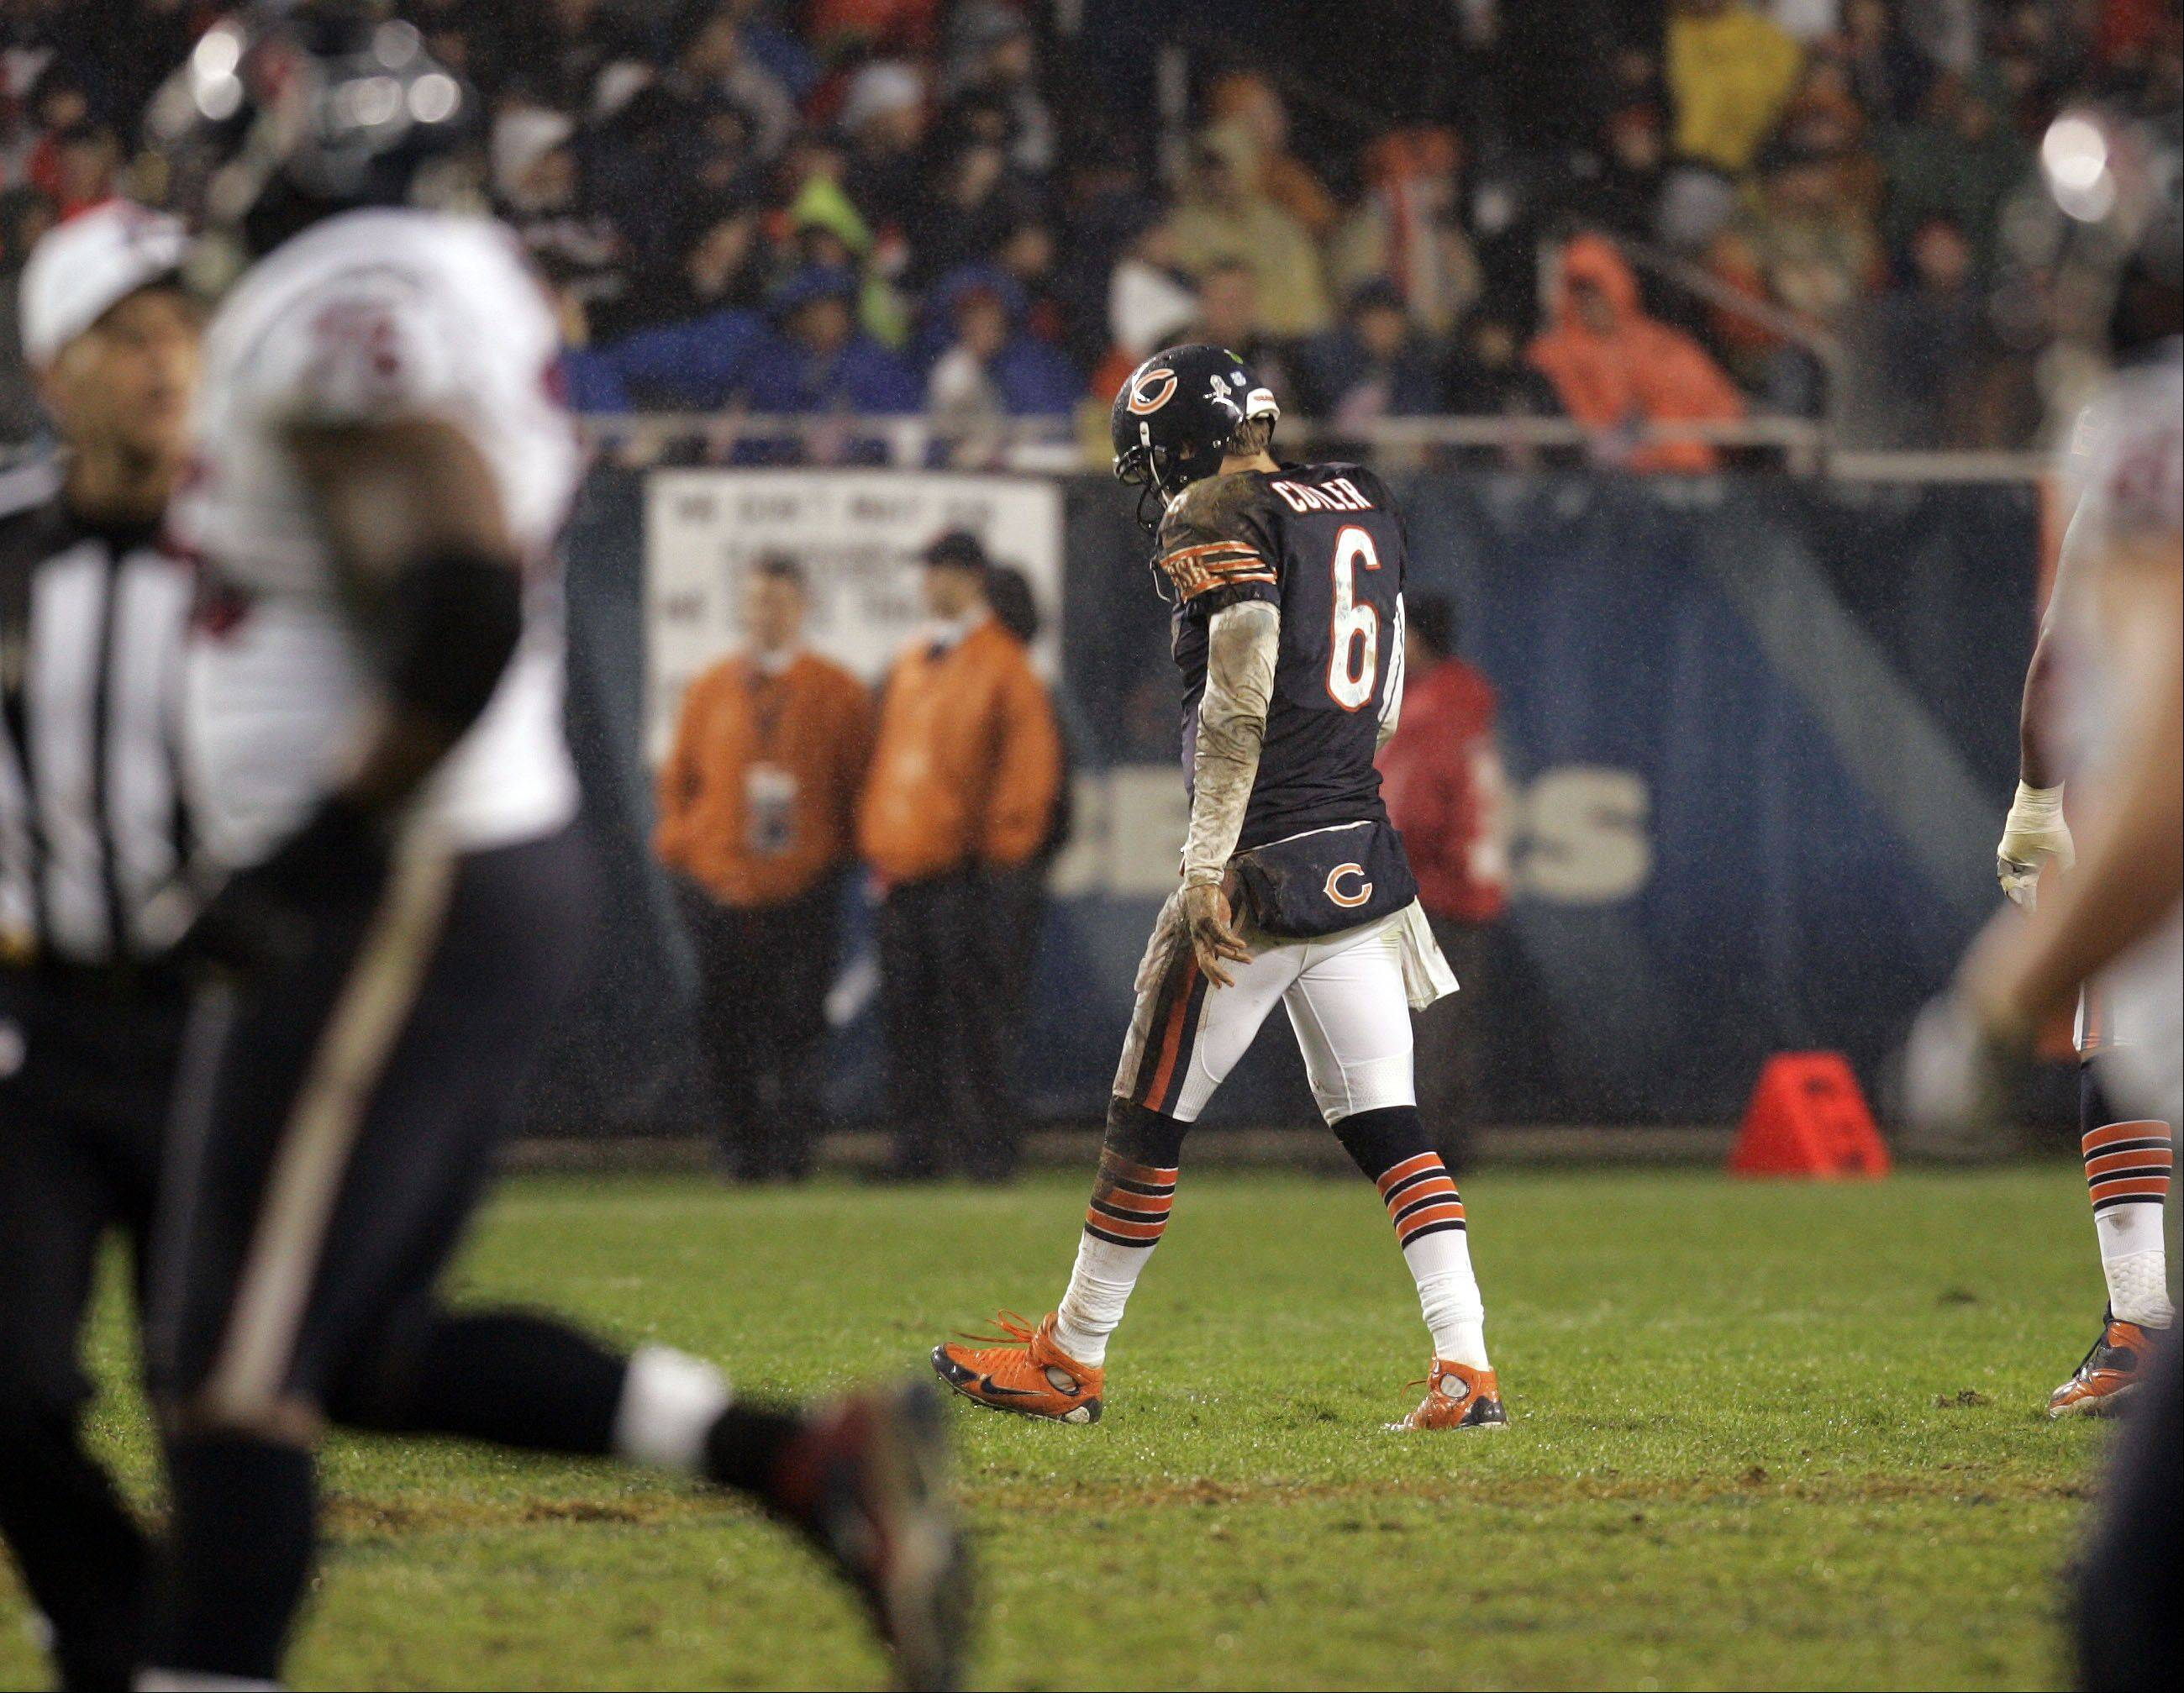 Chicago Bears quarterback Jay Cutler (6) walks off the field after another interception in the second quarter during the game Sunday November 11, 2012 at Soldier Field in Chicago.